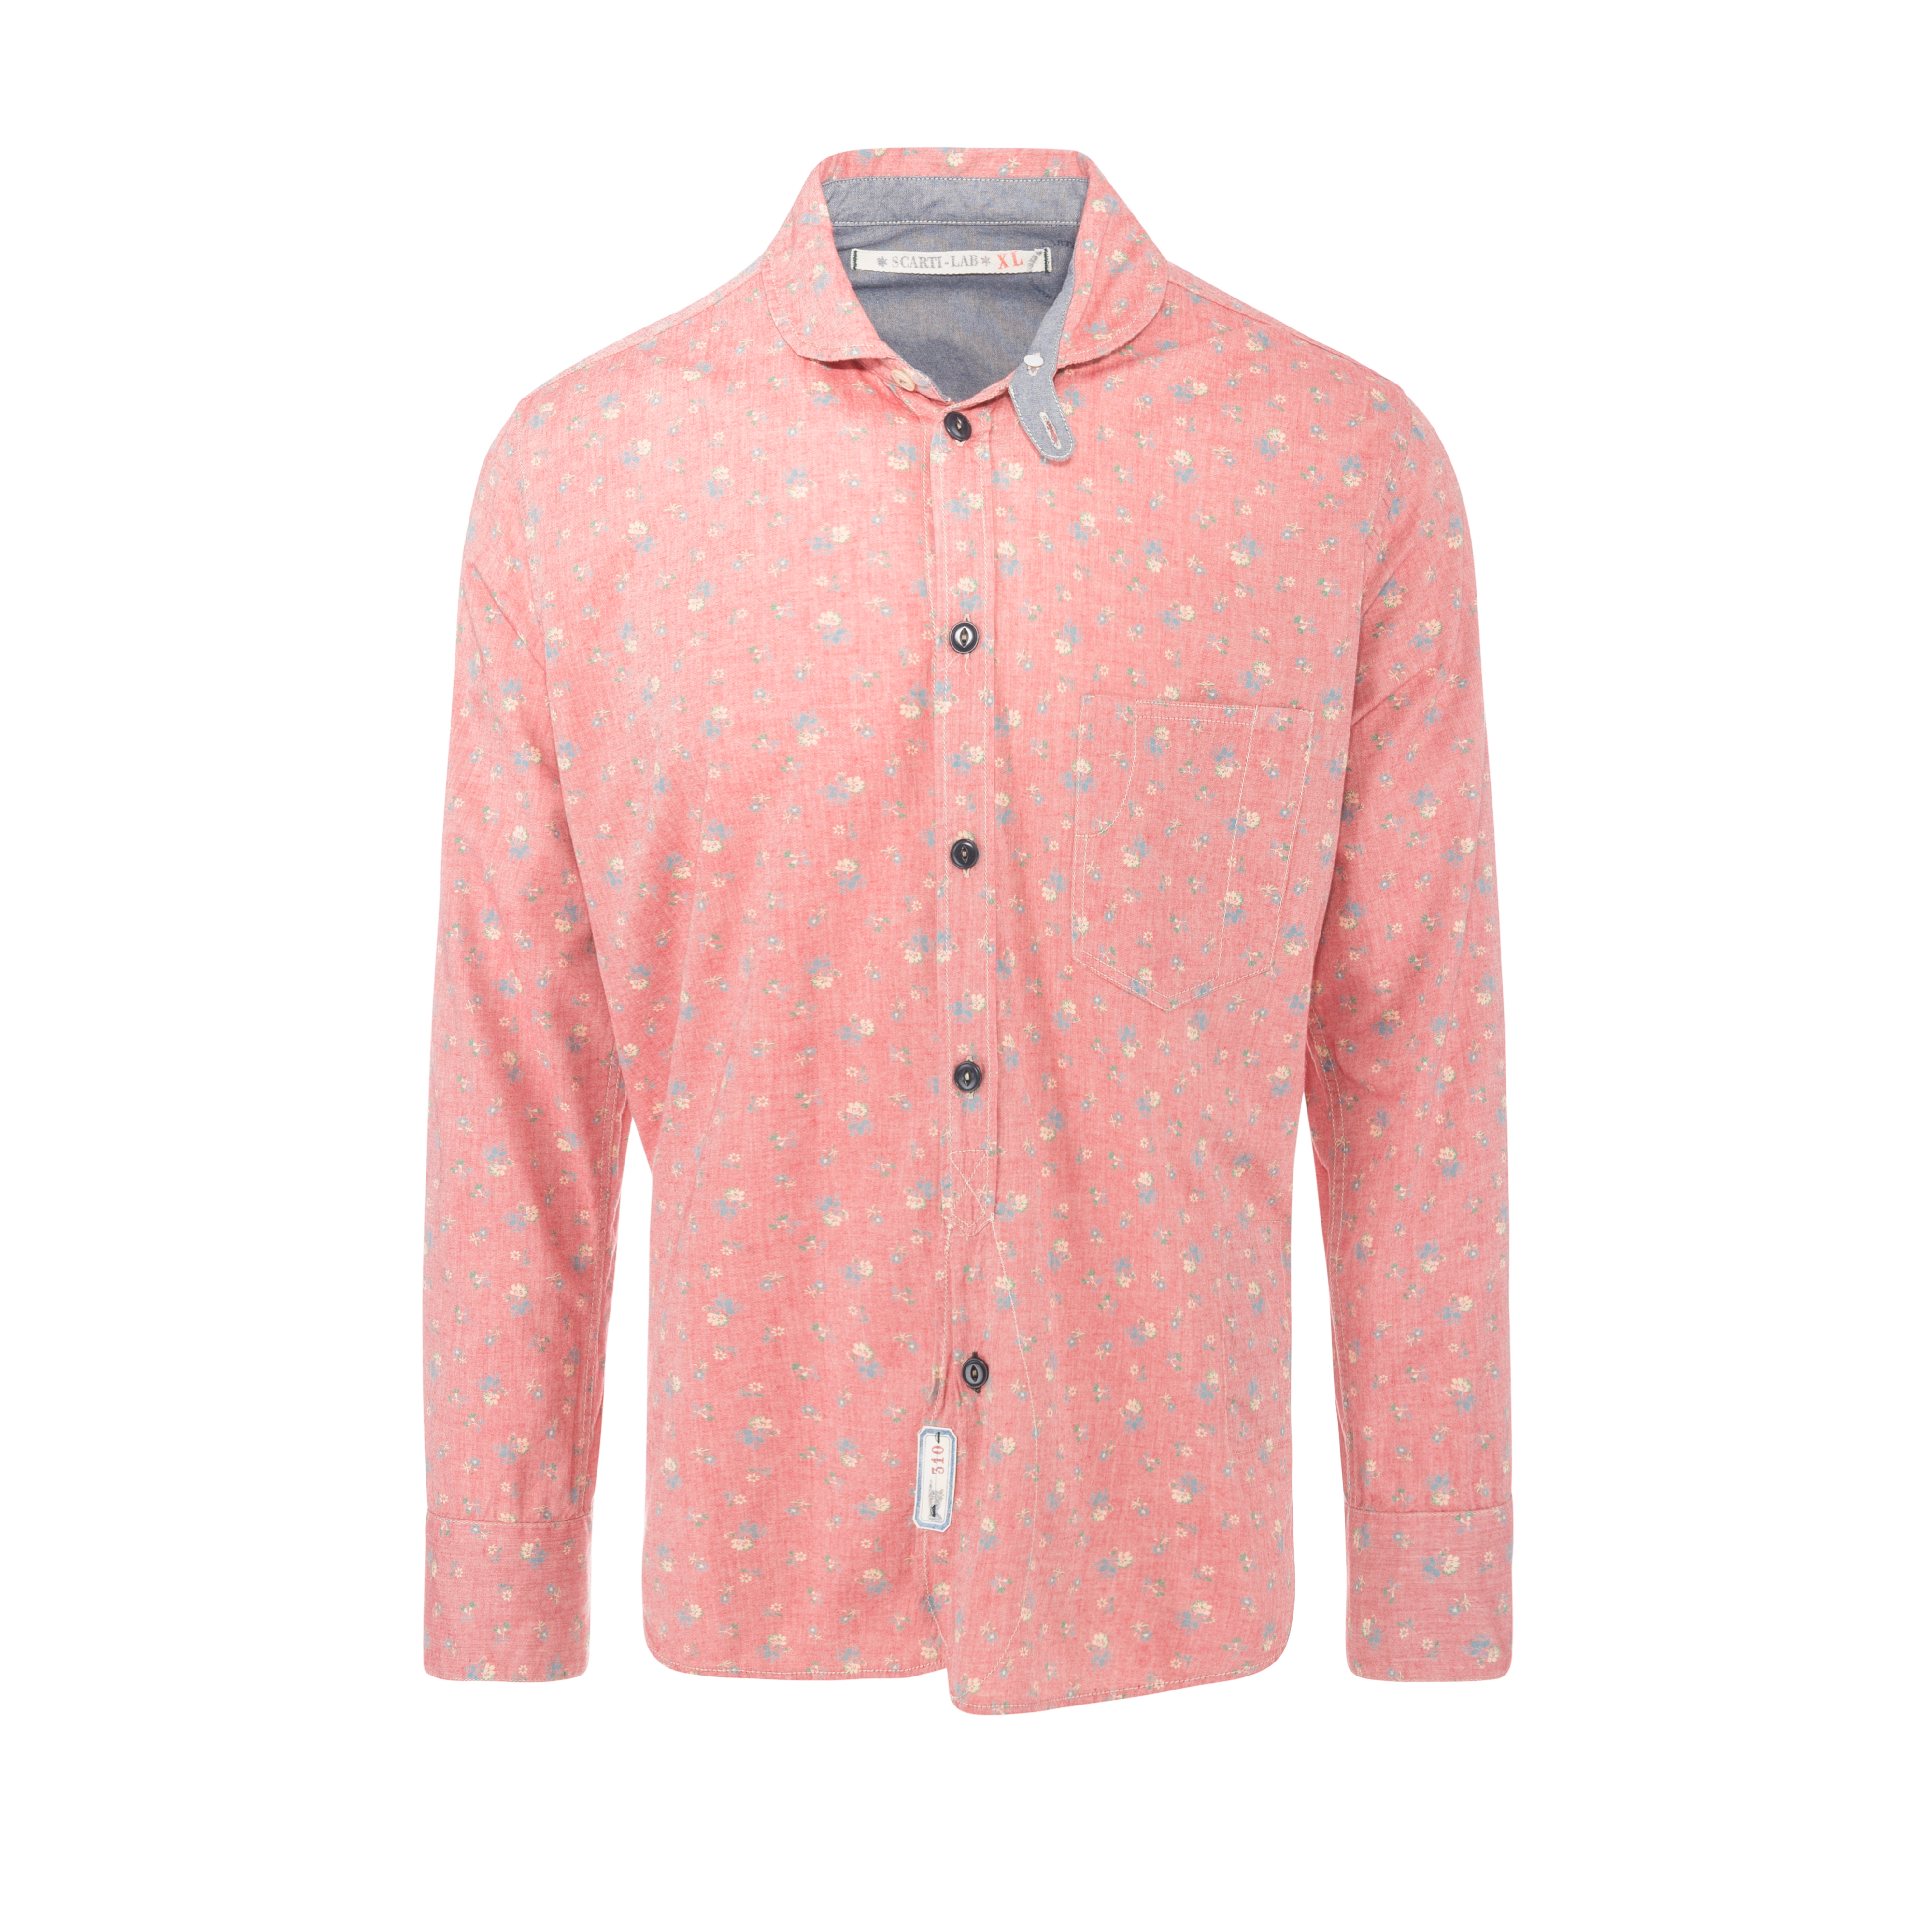 Cotton Shirt Light Red With Flowers